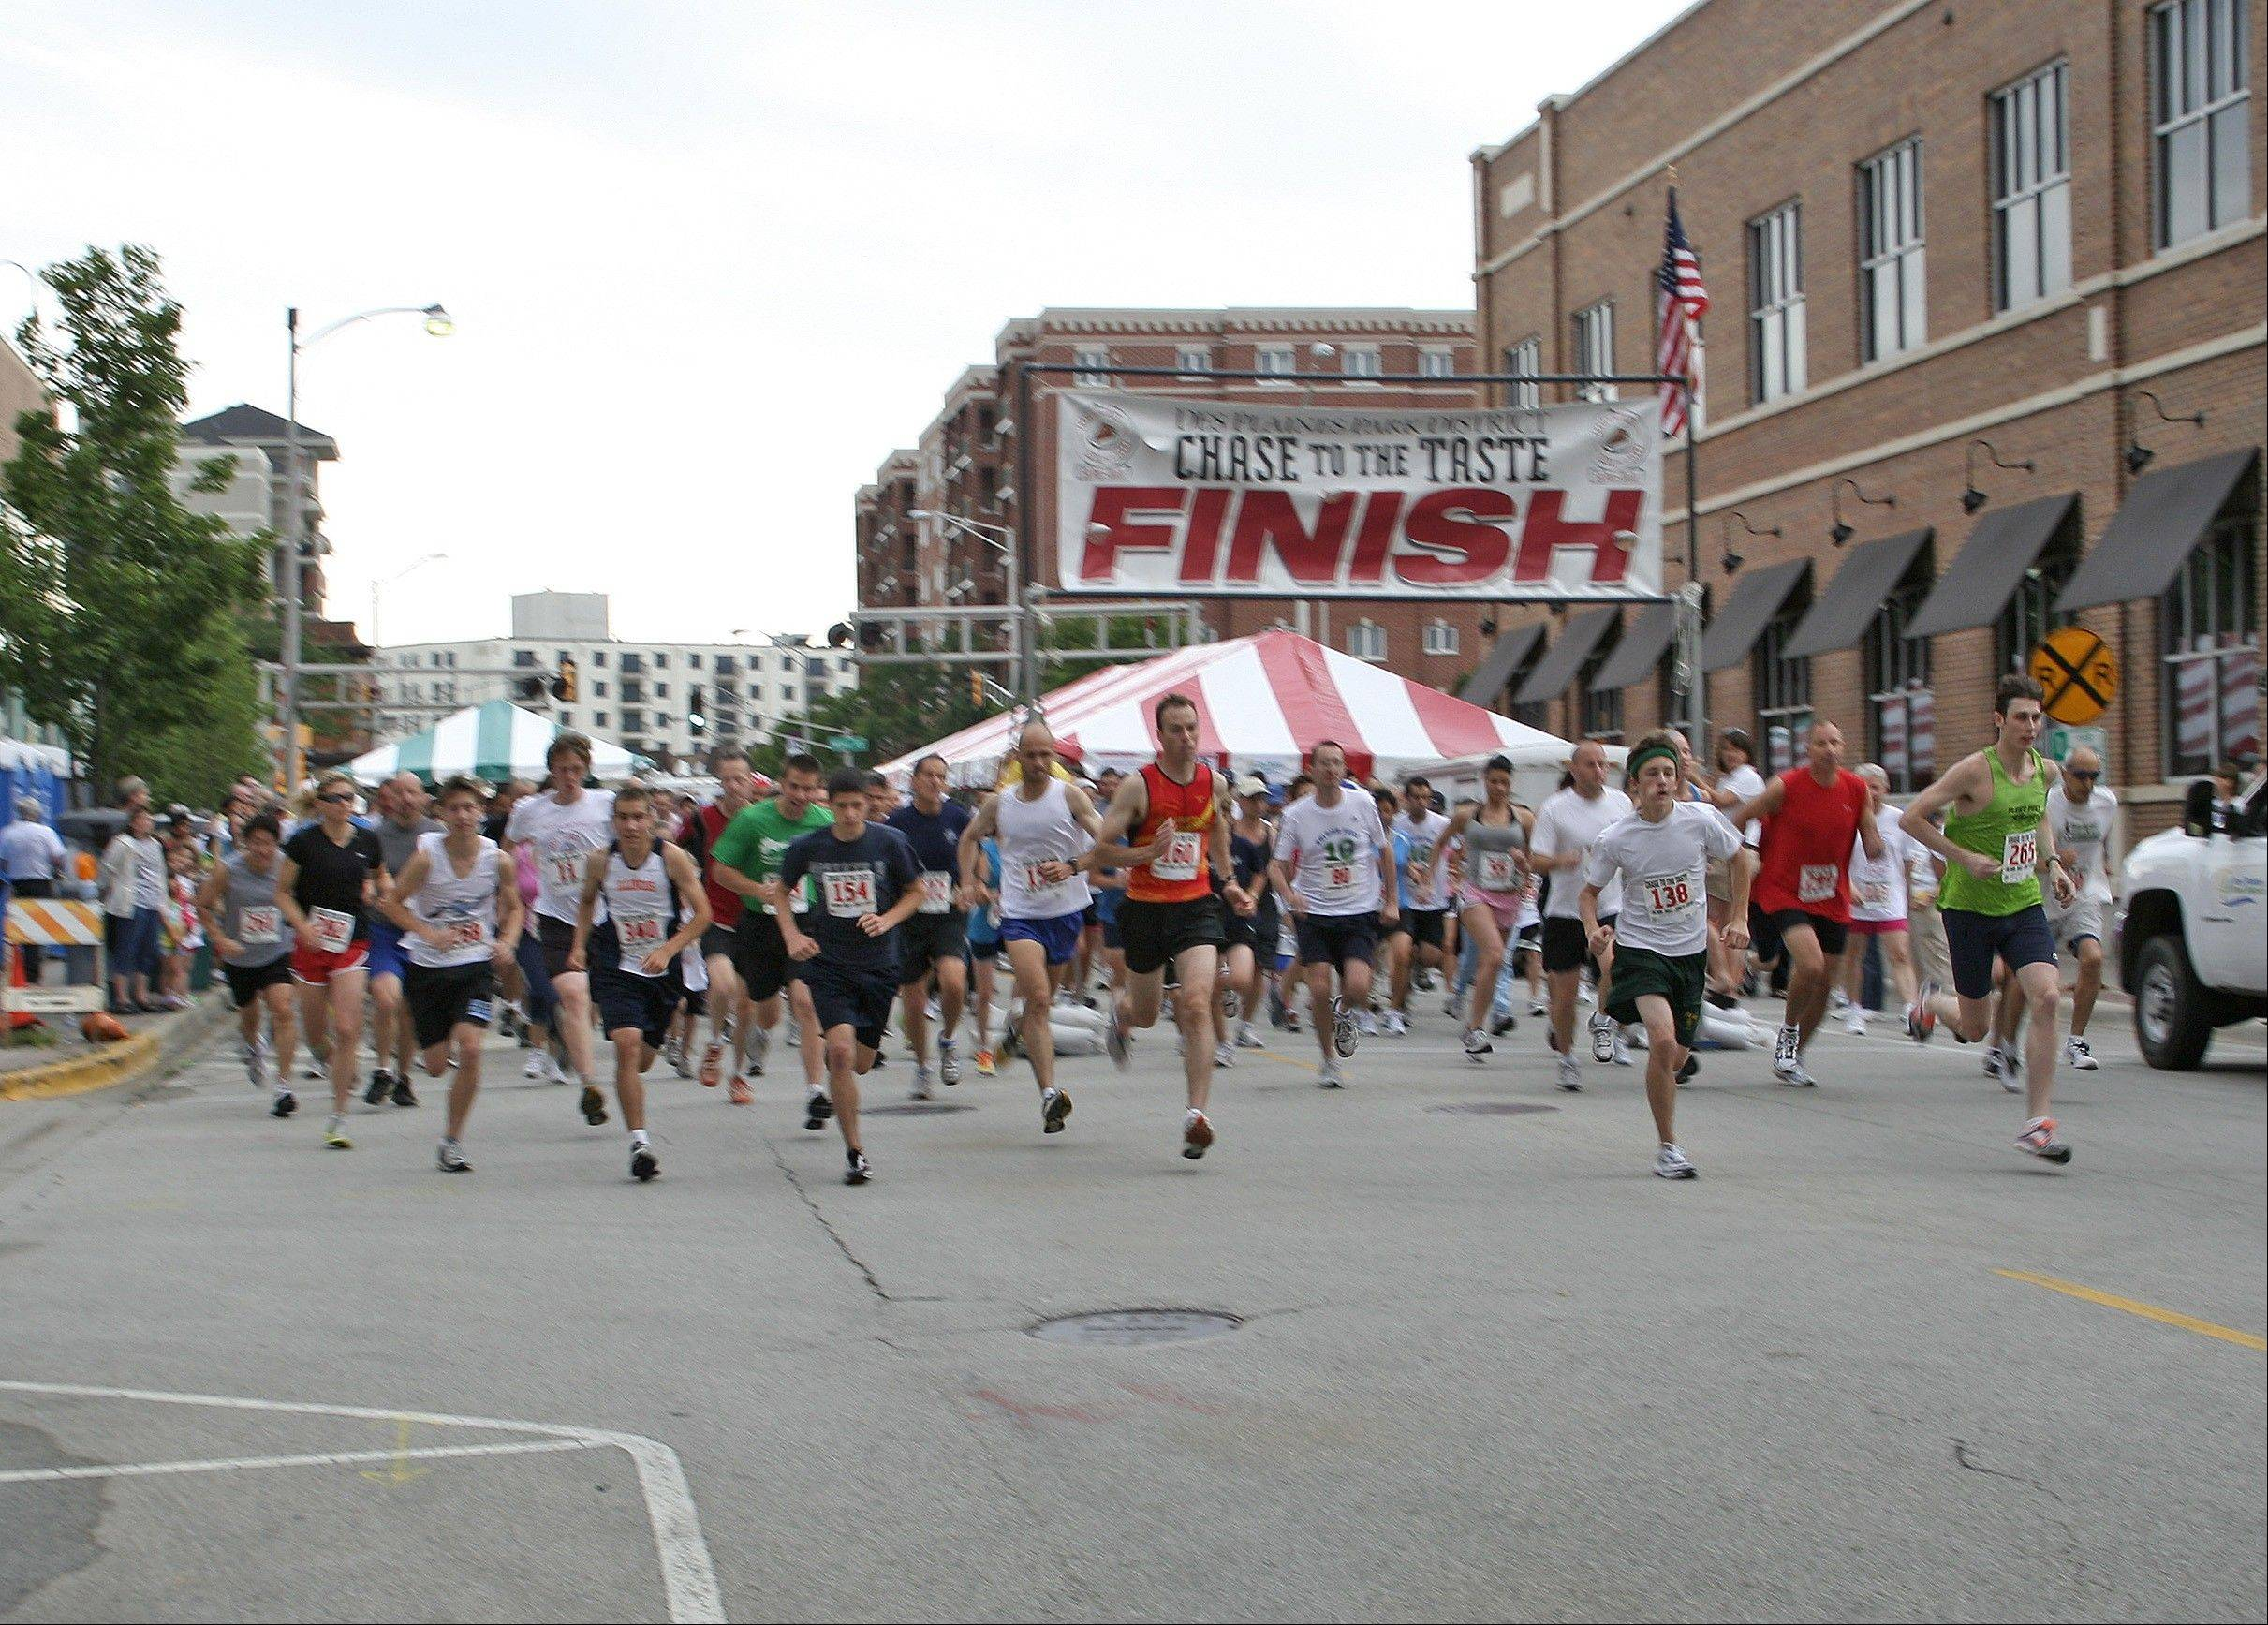 The 2010 Chase steps off; more than 300 runners and walkers competed in the event, which raises money for the Des Plaines Park District Scholarship fund.